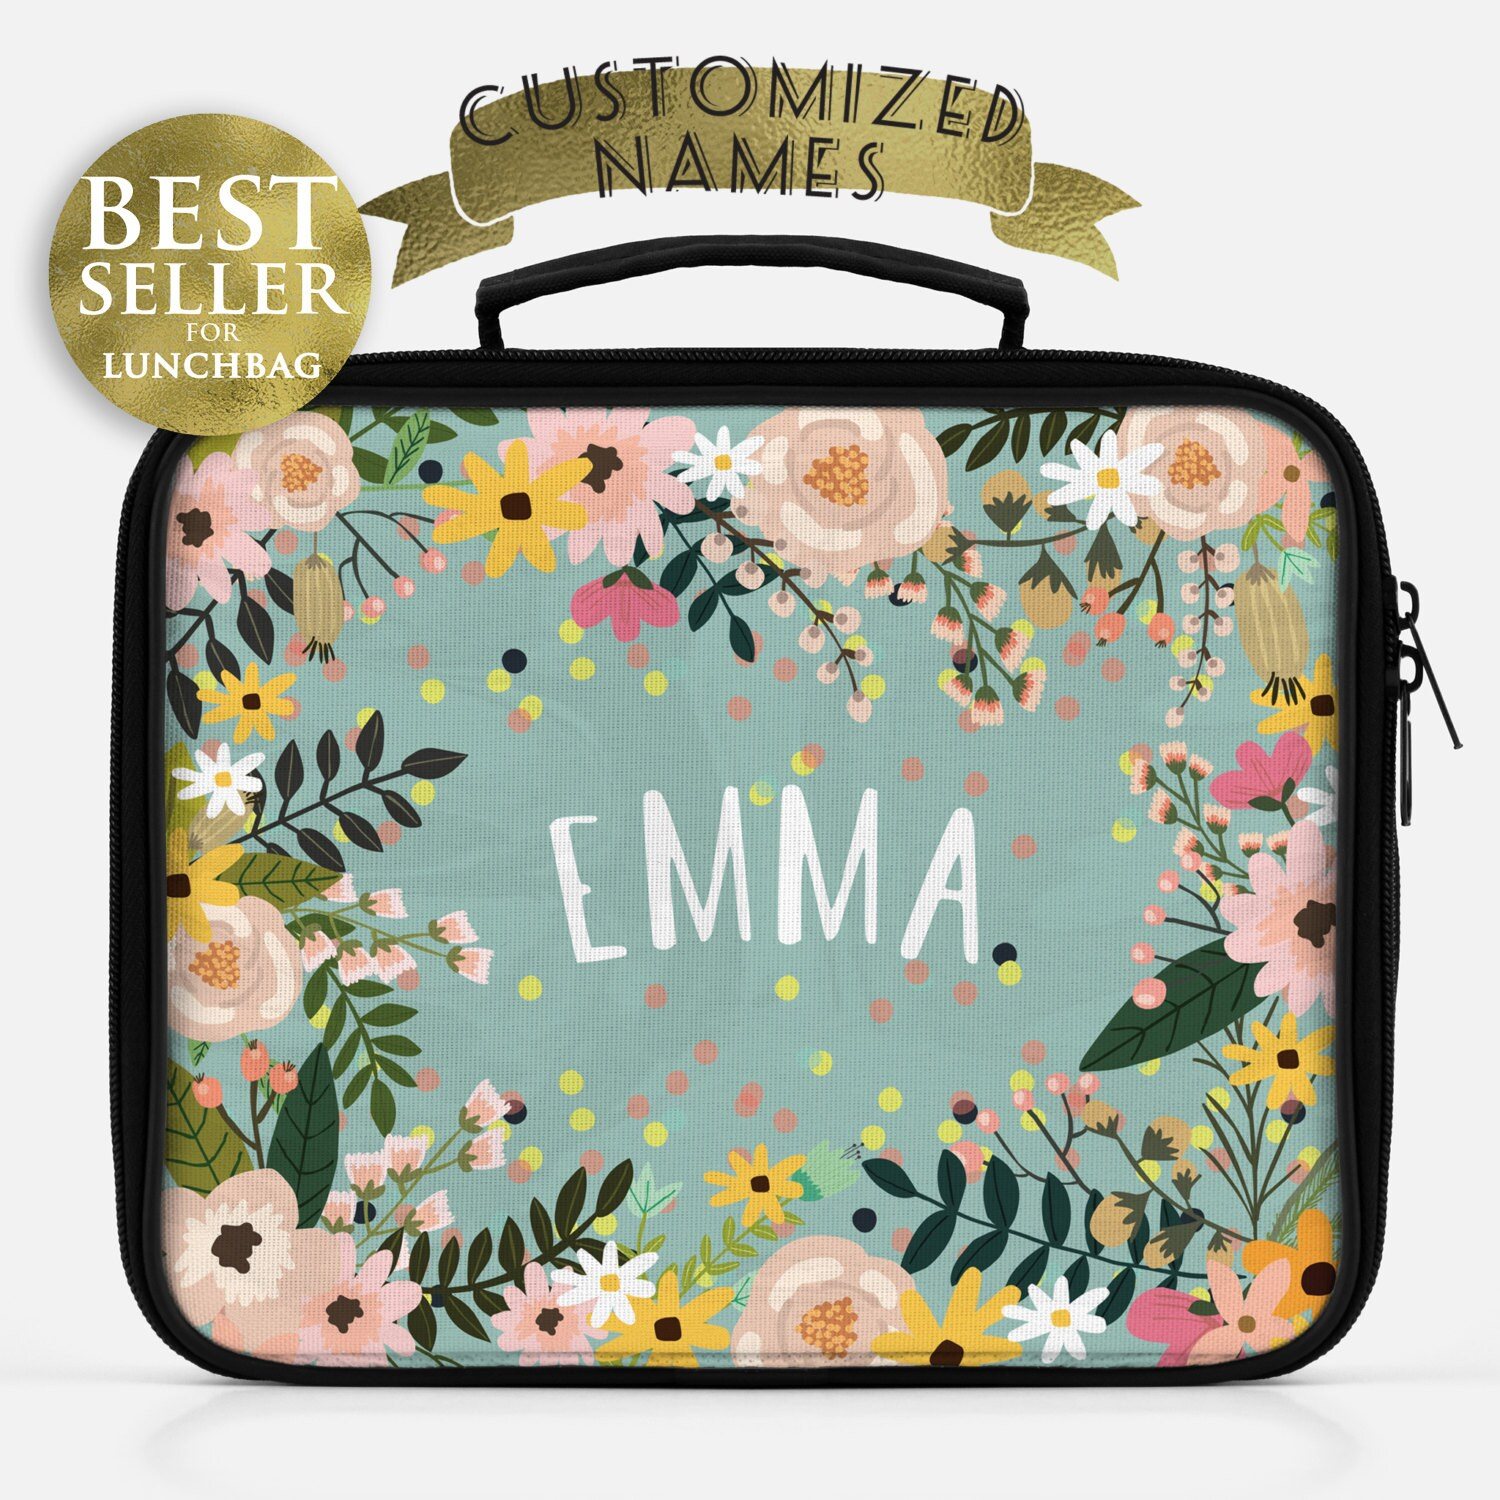 Lunch box - Monogrammed gifts - Personalized lunch box - Lunch tote - Children's lunchbox - Lunch bag for women